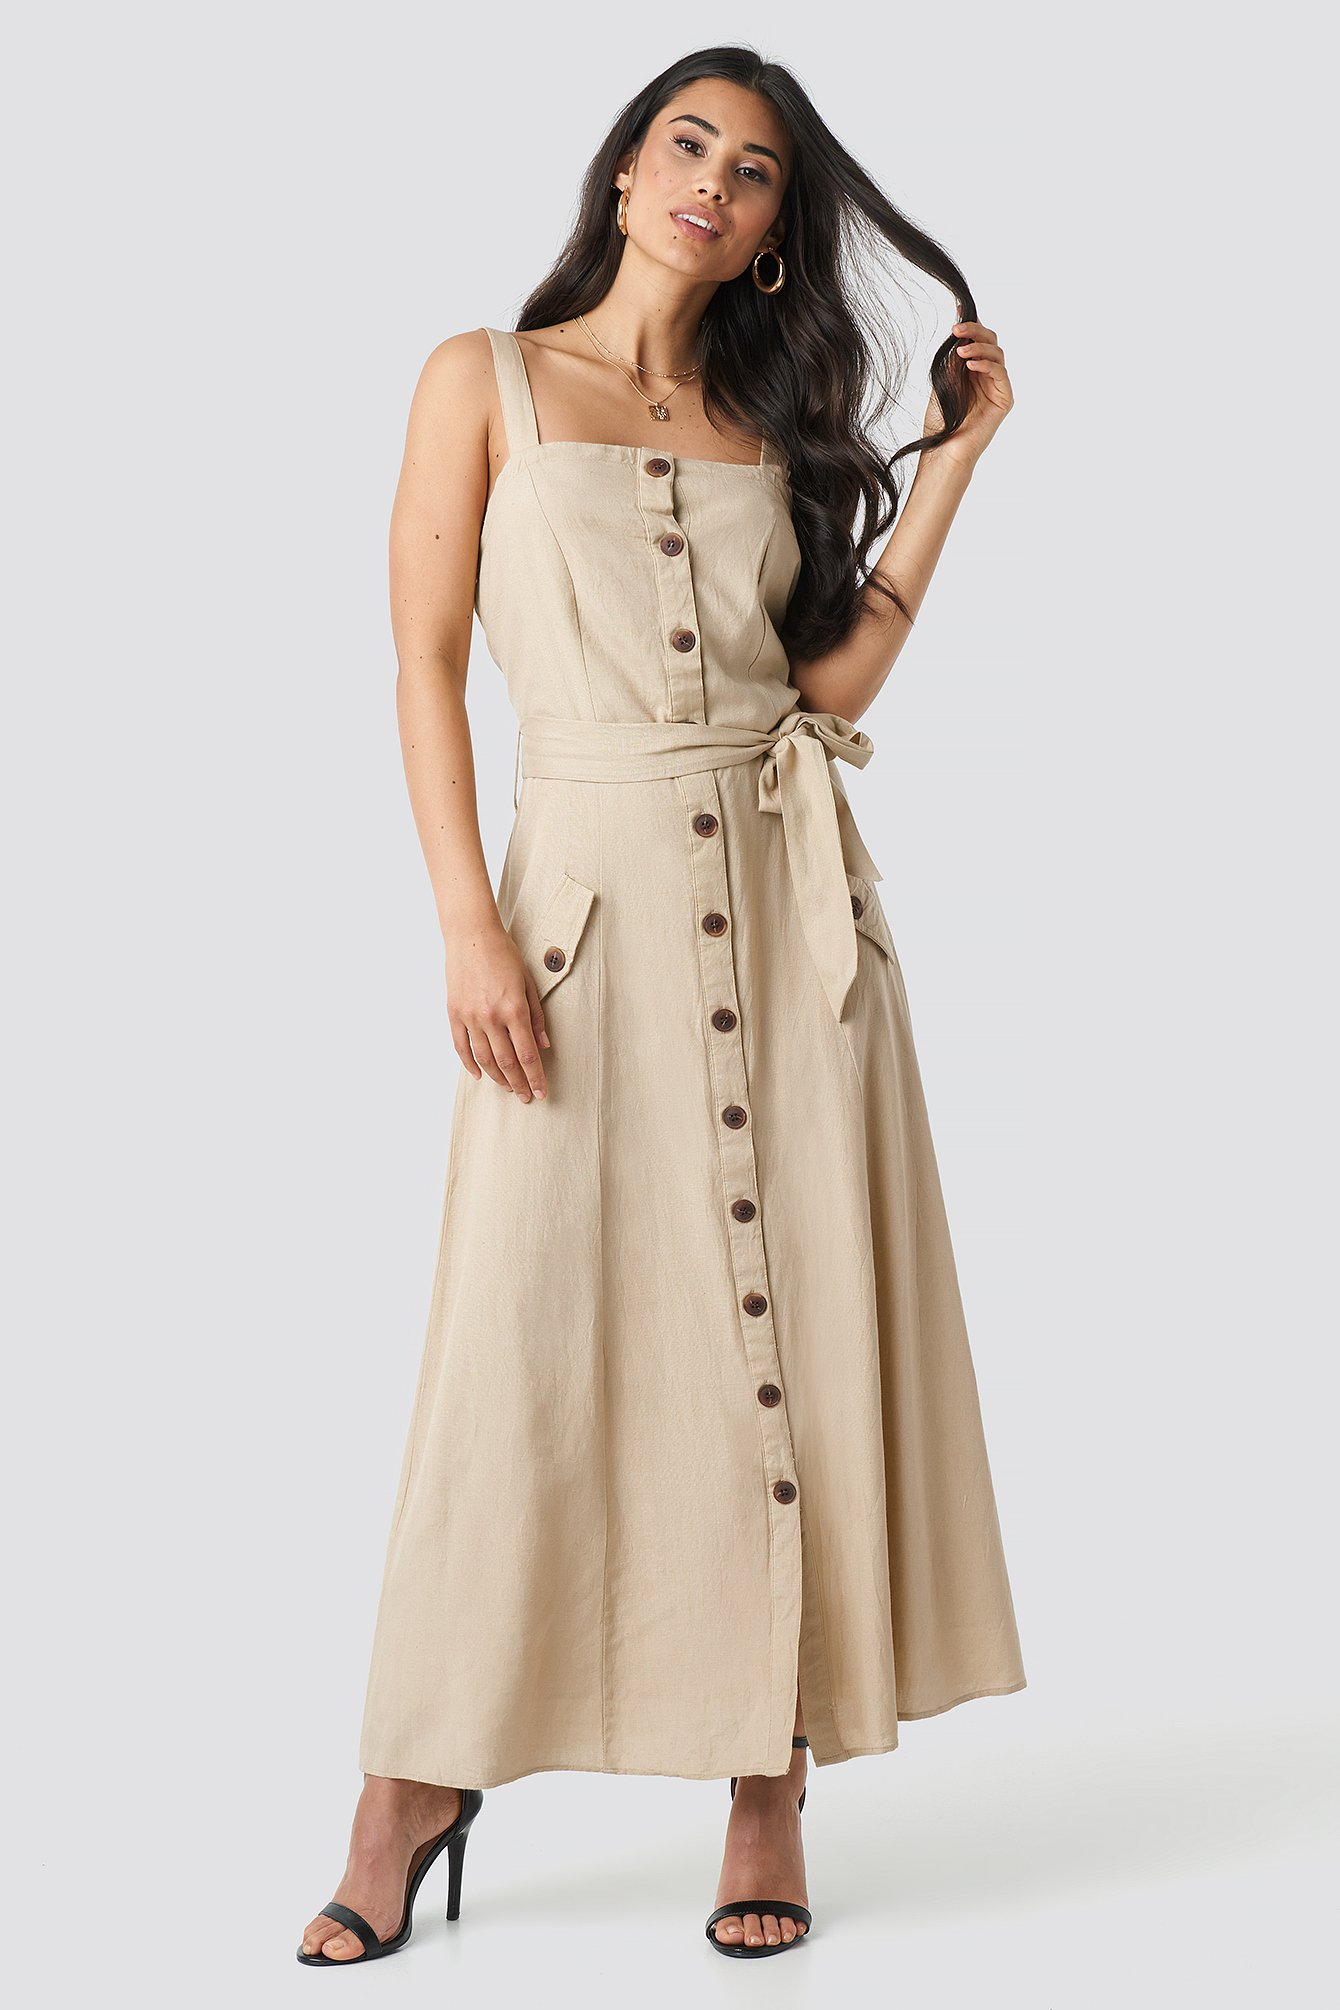 Sisters Point Bina Dress - Beige